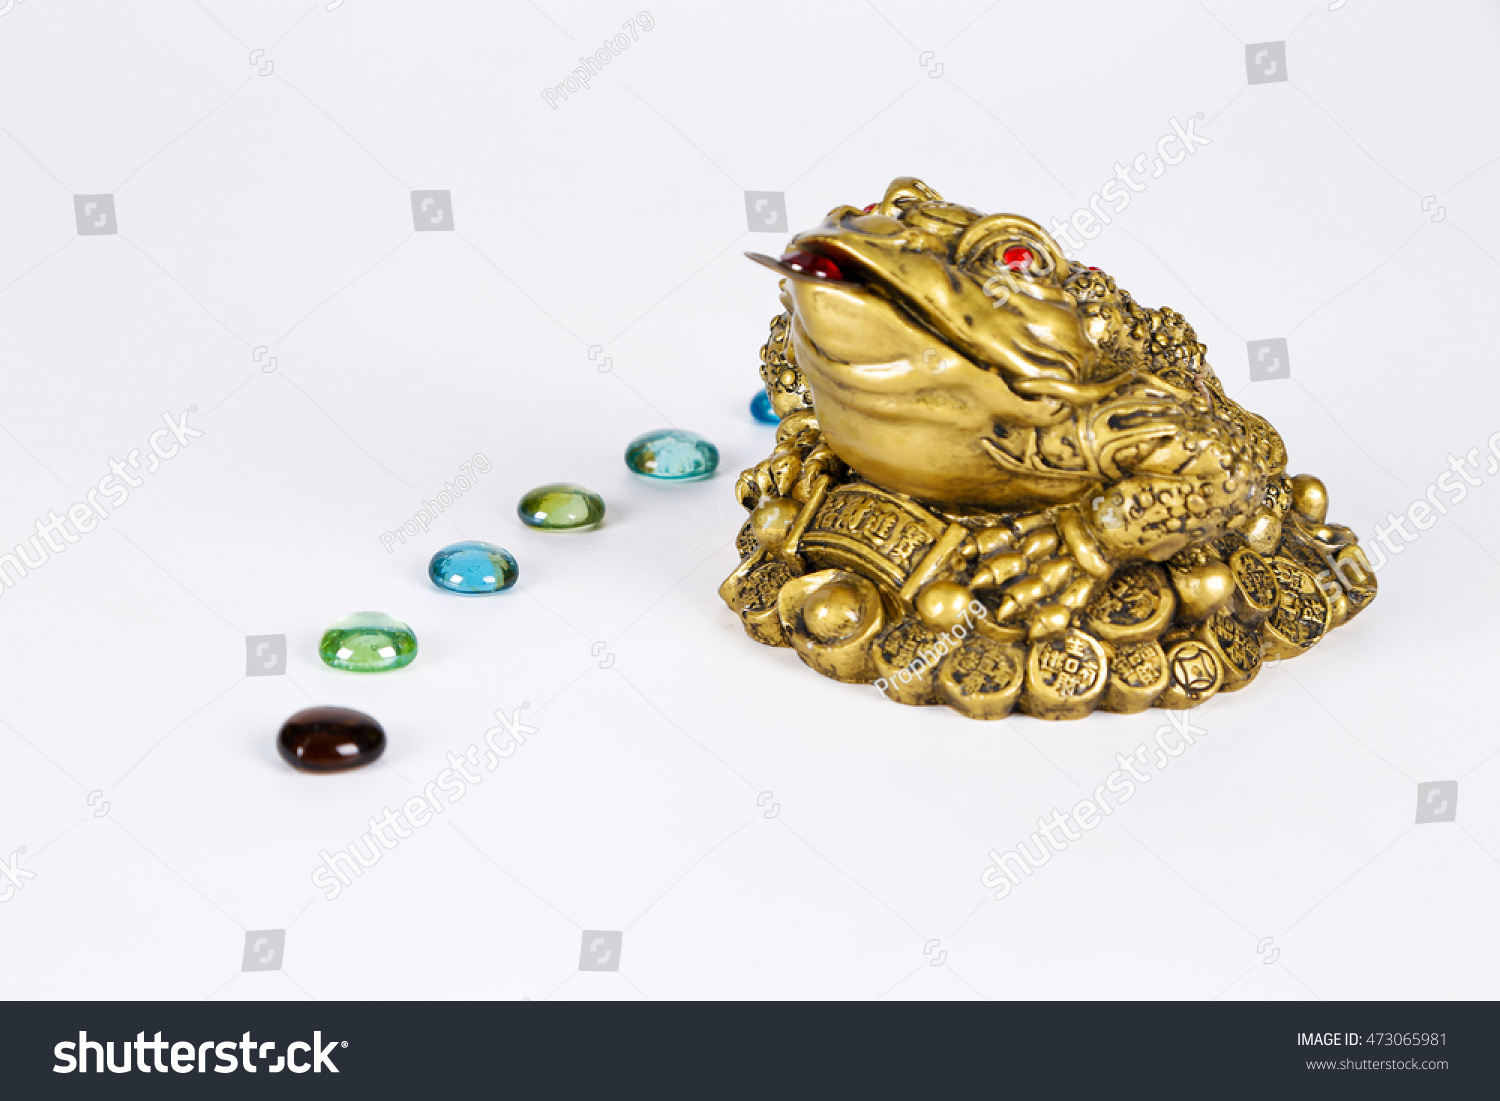 Good Luck Frog The Frog As A Lucky Symbol Chinese Frog Figurine